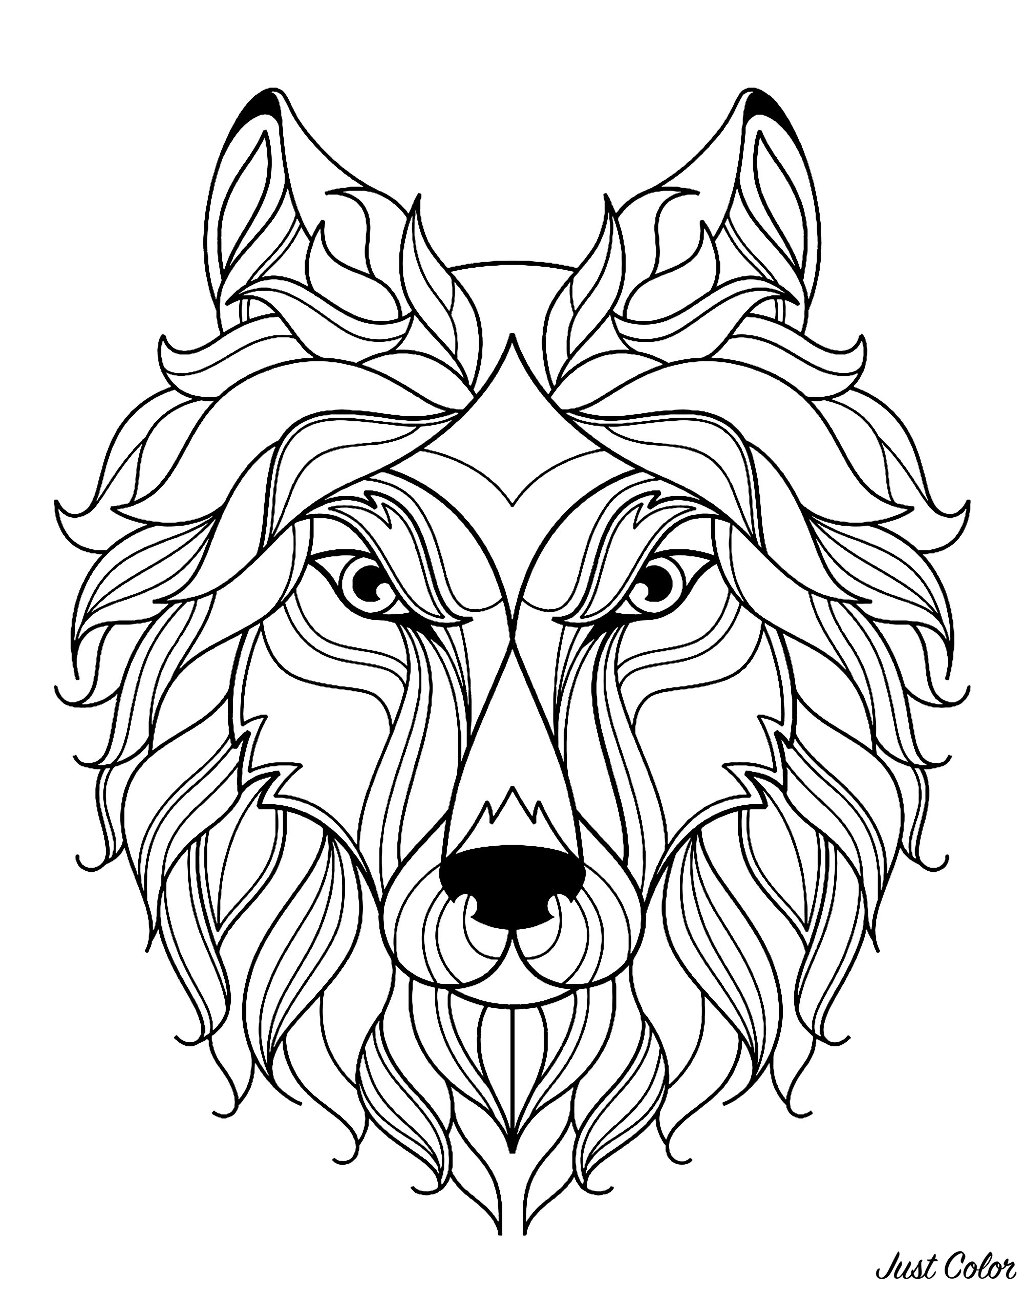 net coloring pages for kids - photo#41